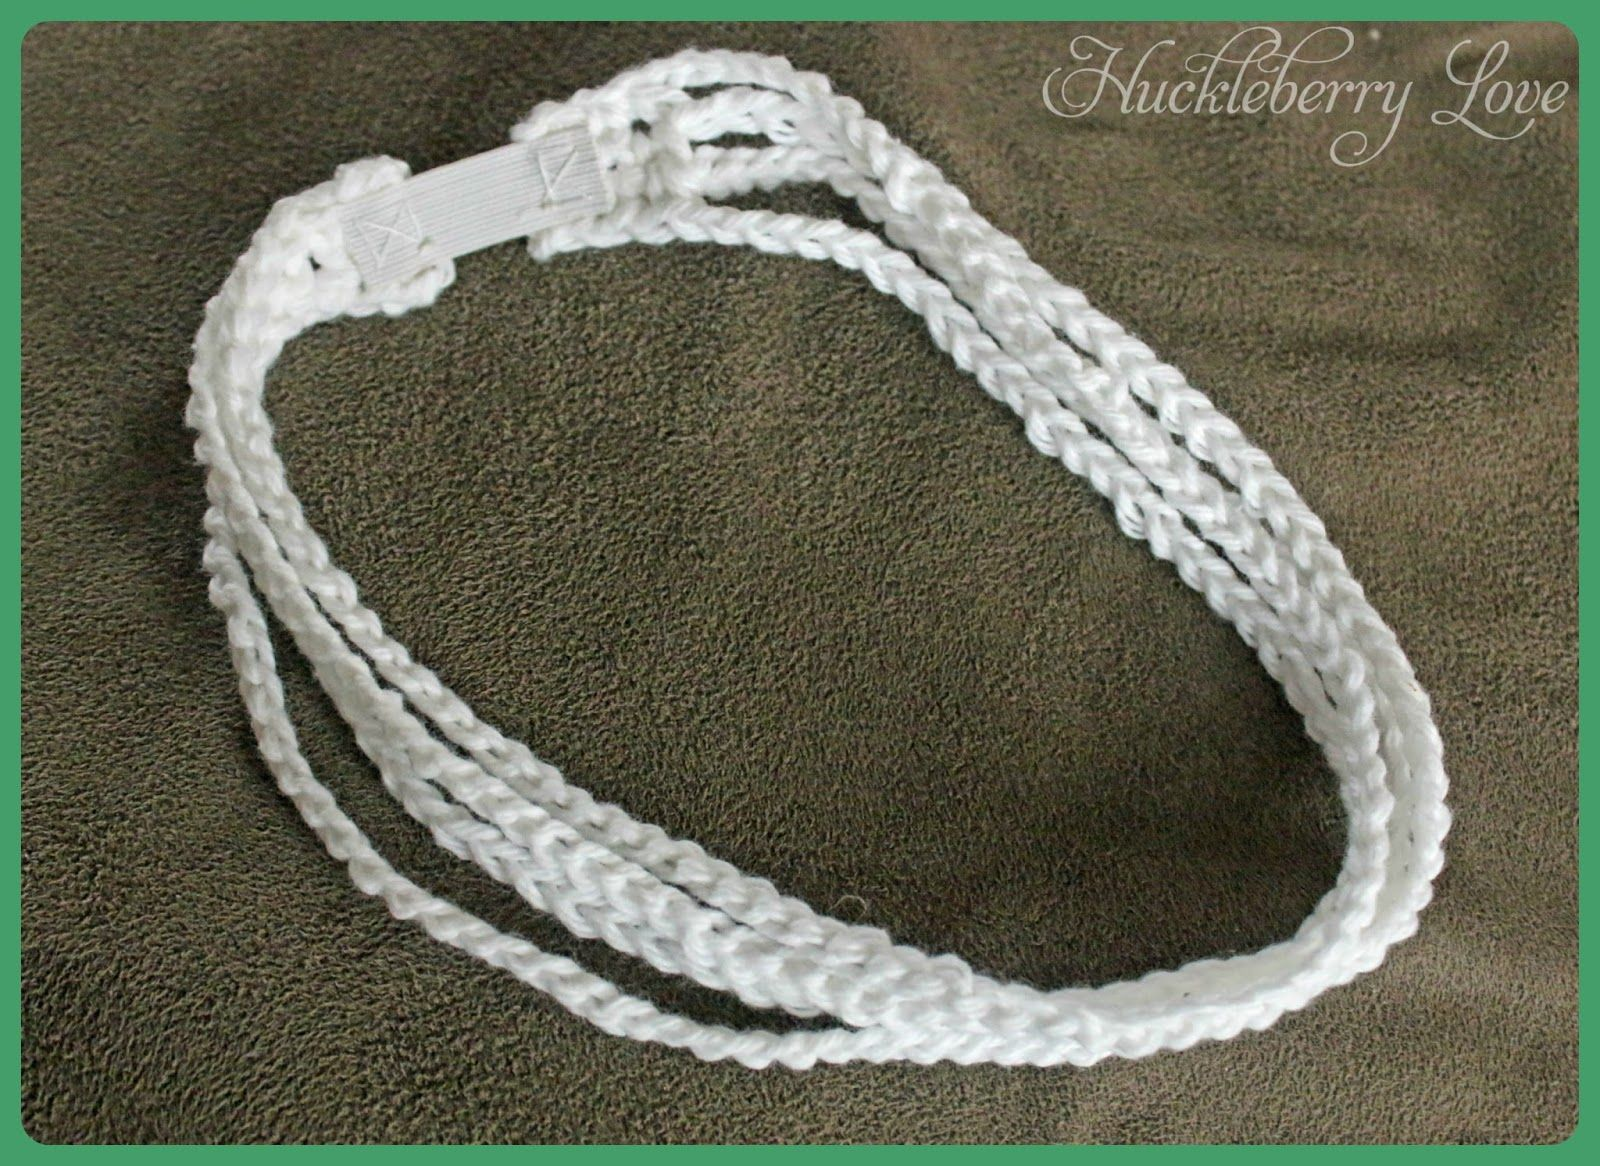 Huckleberry love clover leaf crochet headband tutorial huckleberry love clover leaf crochet headband tutorial baditri Image collections